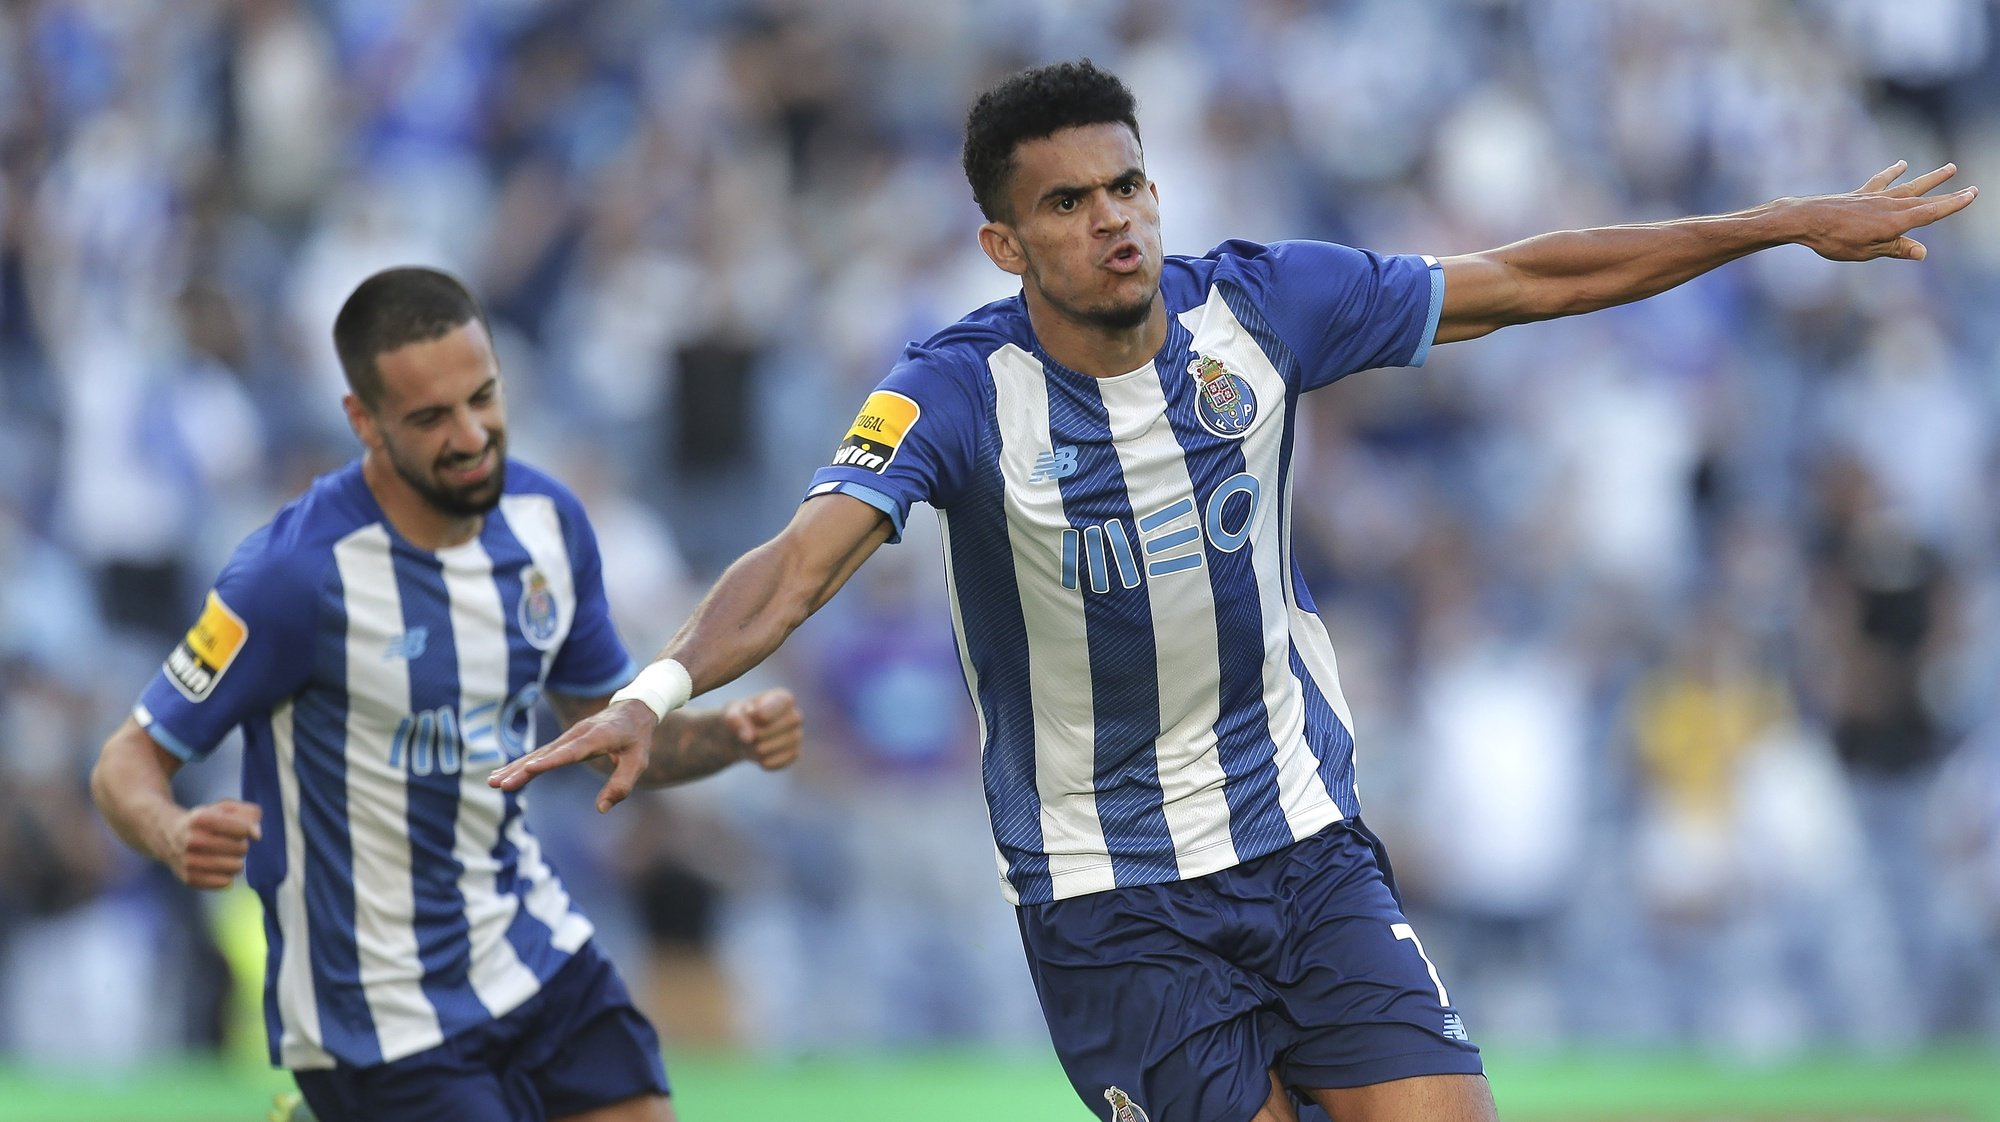 FC Porto player Luis Diaz (R) celebrates after scoring his goal against Belenenses SAD, during their Portuguese First First League soccer match, held at Dragão stadium in Porto, Portugal, 8th August 2021. MANUEL FERNANDO ARAUJO/LUSA